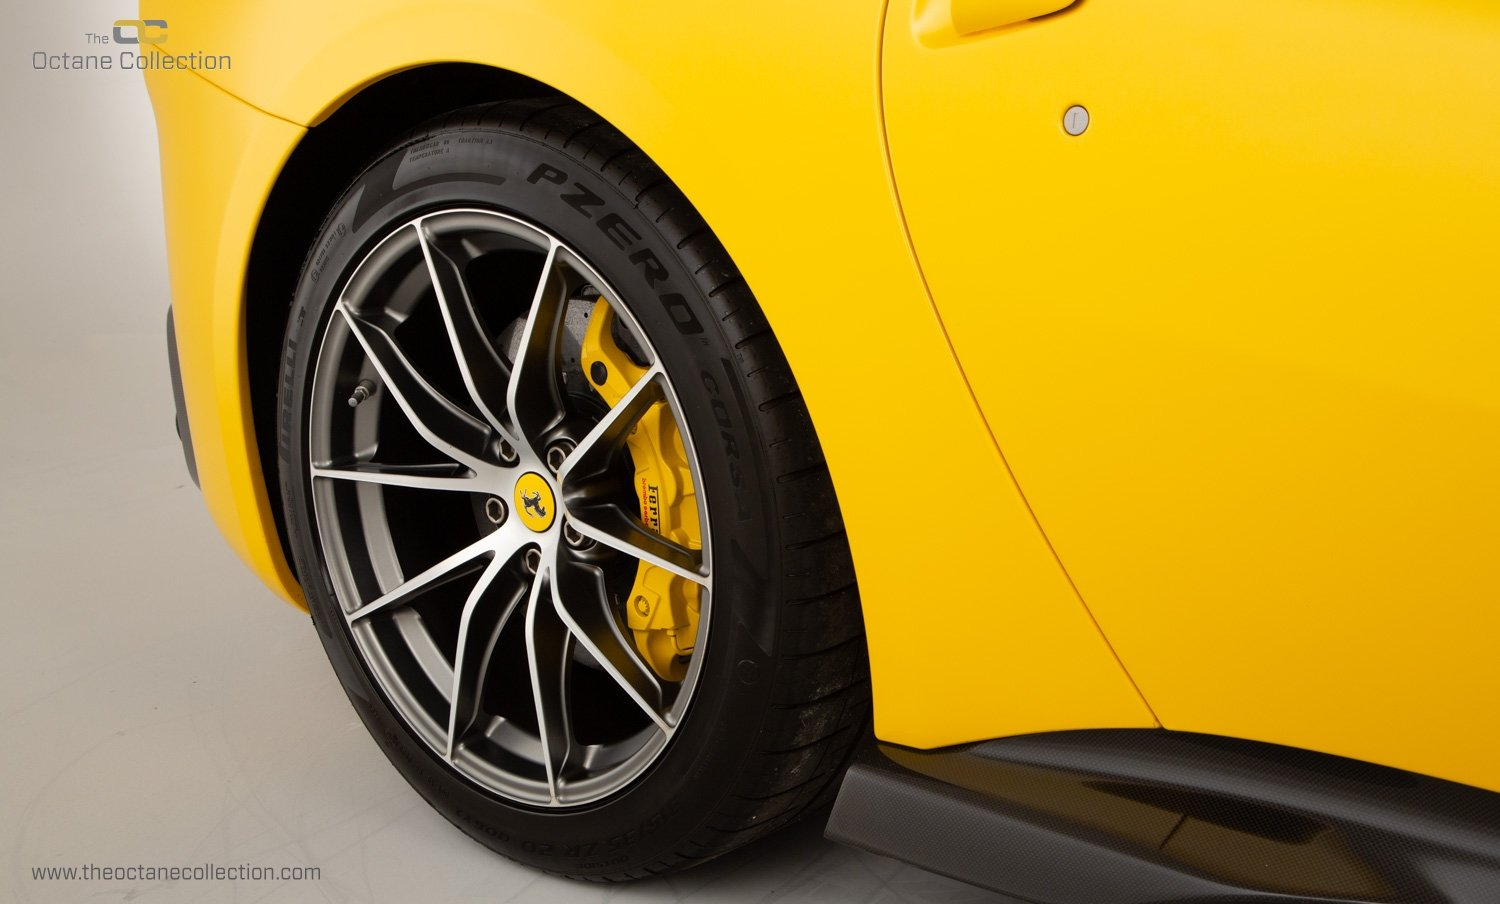 2016 FERRARI F12 TDF // 1 OF 50 UK RHD // TRIPLE LAYER PAINT For Sale (picture 23 of 23)